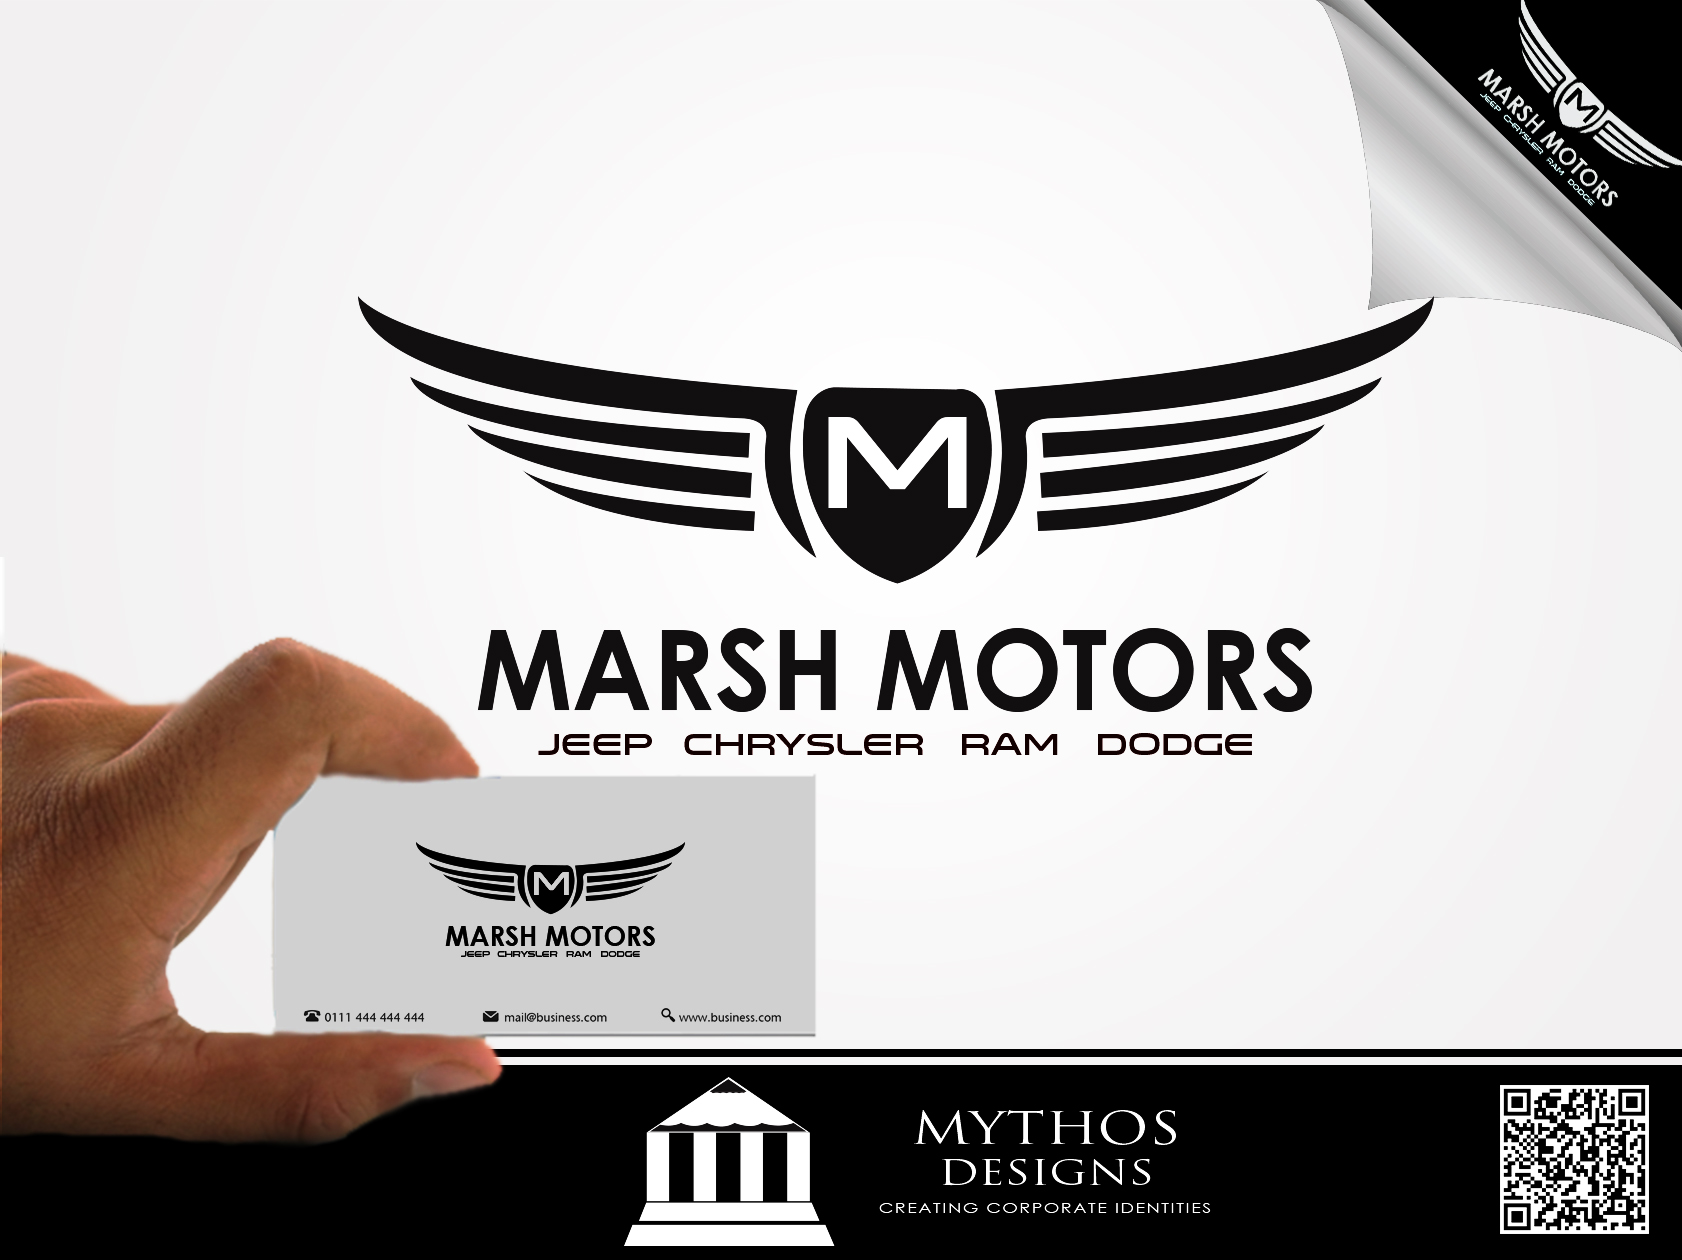 Logo Design by Mythos Designs - Entry No. 34 in the Logo Design Contest Marsh Motors Chrysler Logo Design.